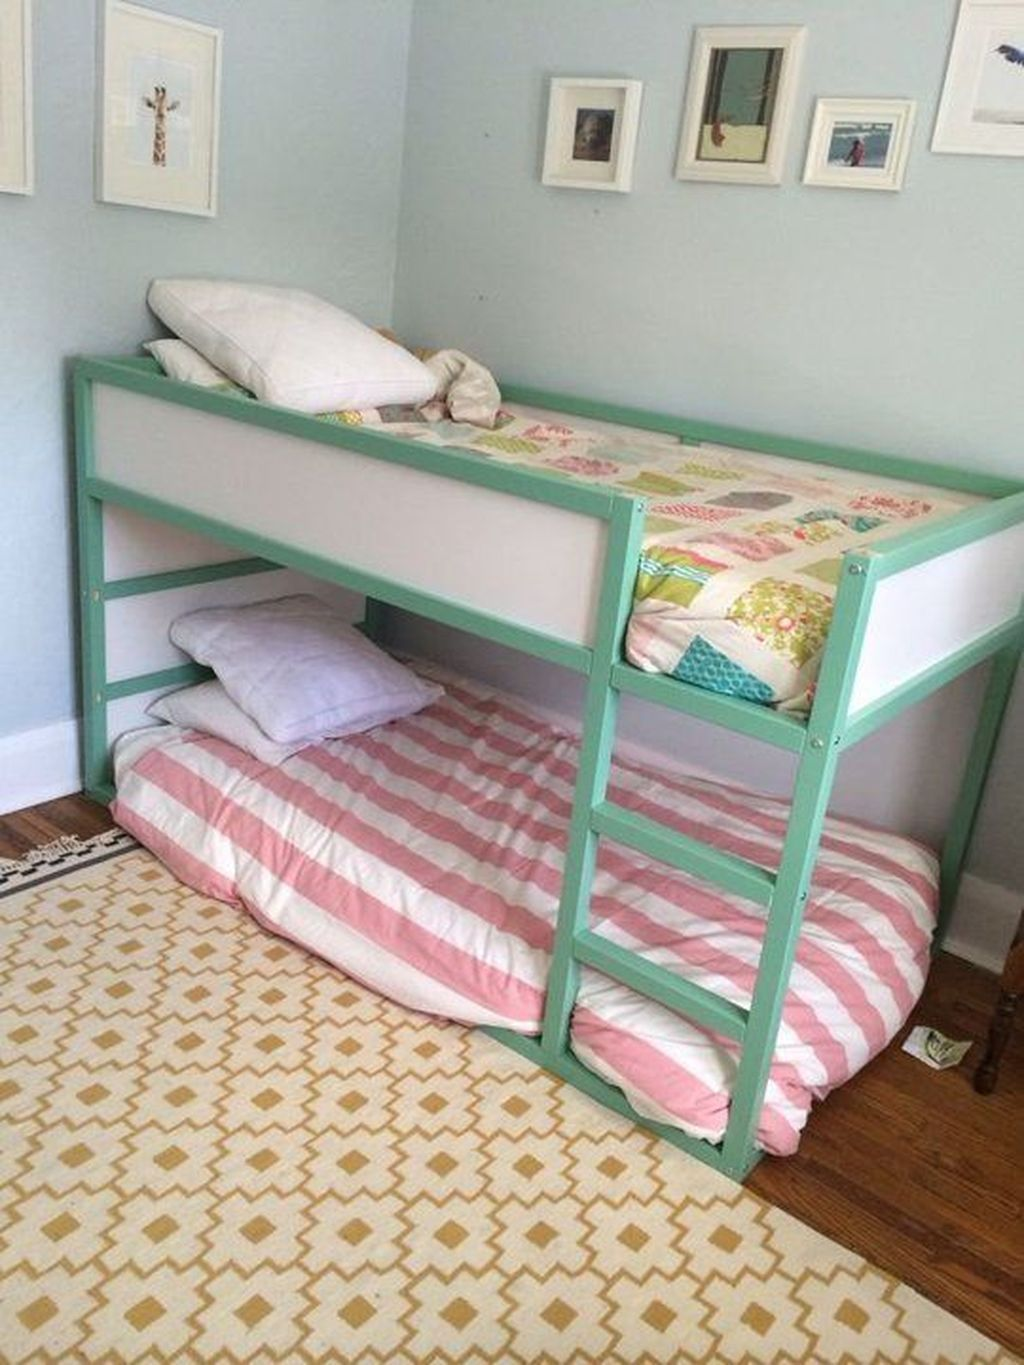 51 Cool Ikea Kura Beds Ideas For Your Kids Rooms Bedroom